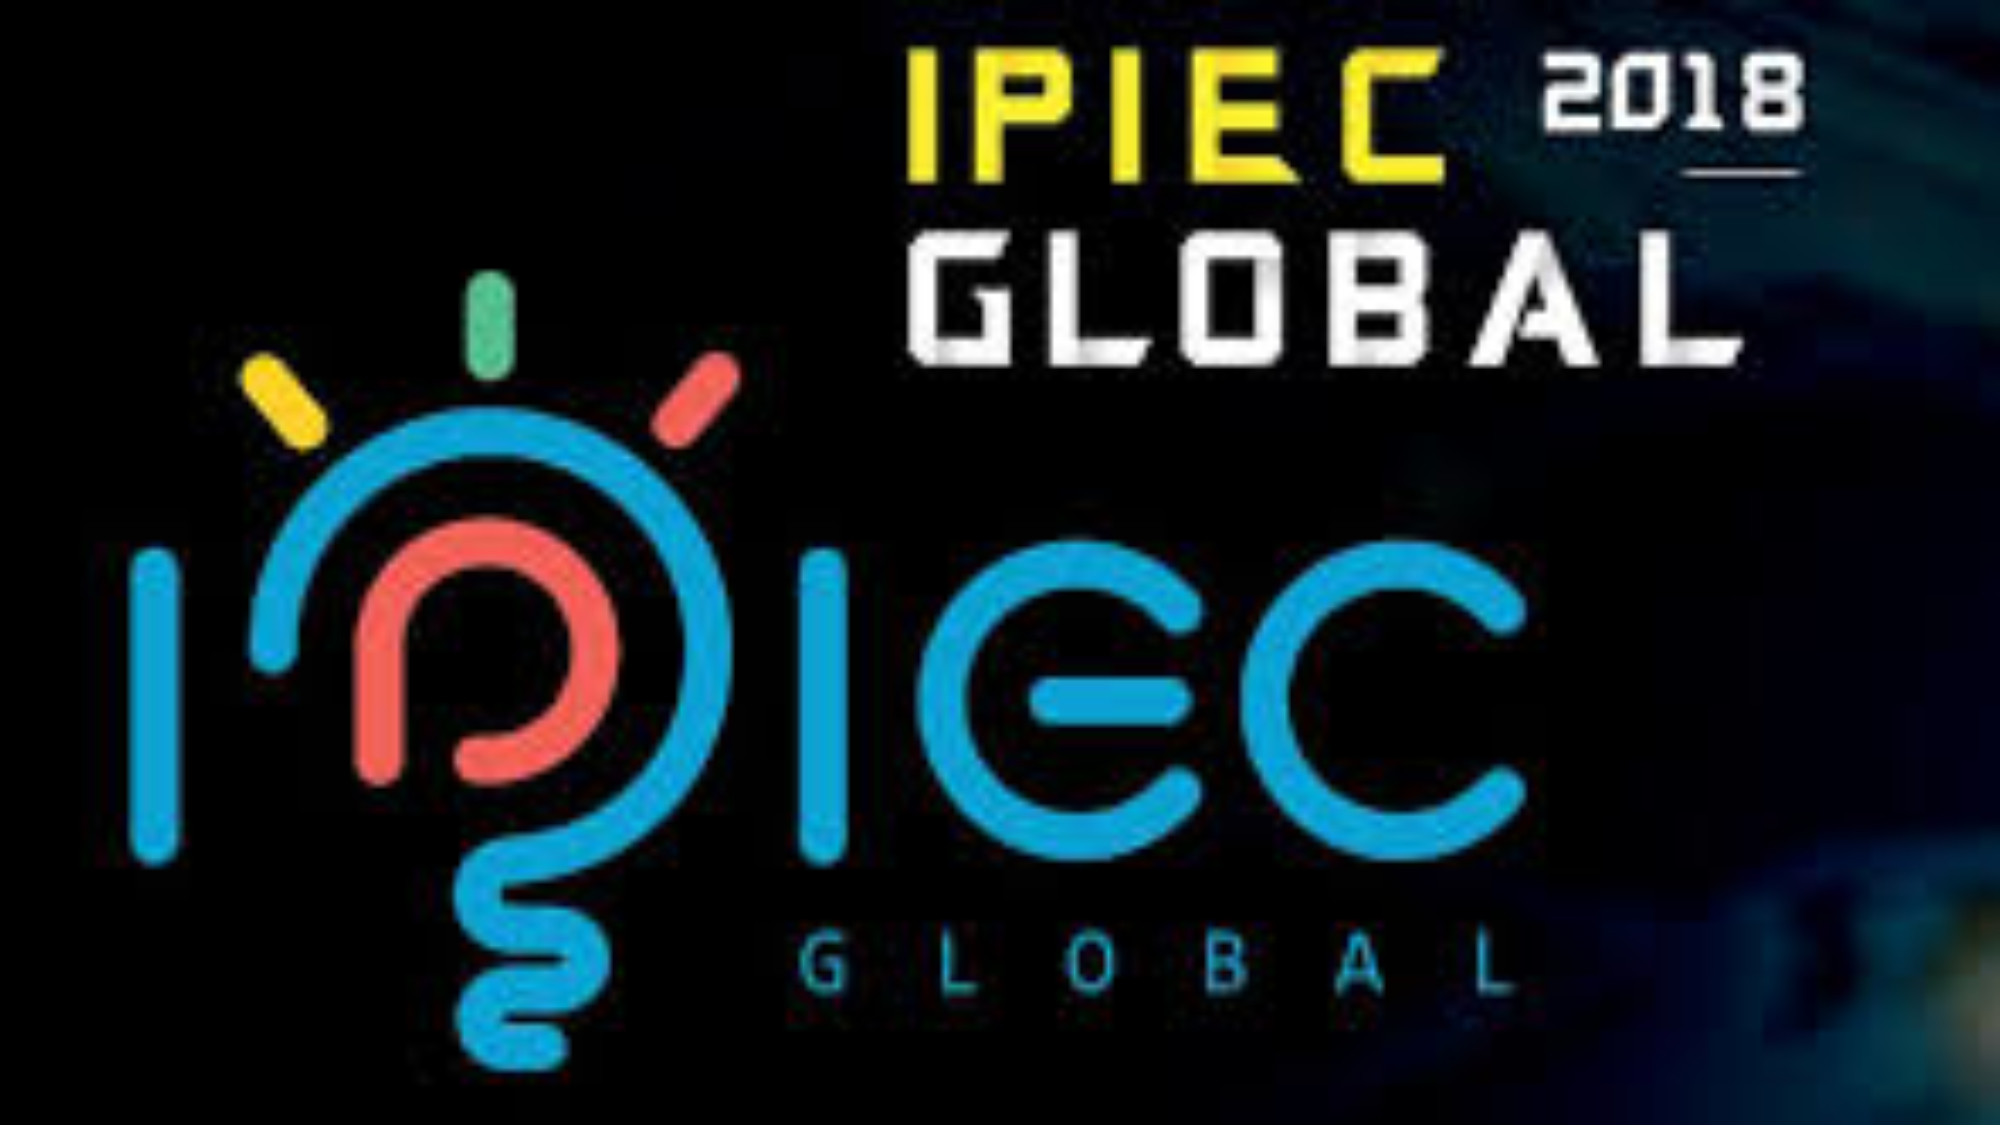 Amphasys participating in IPIEC Global